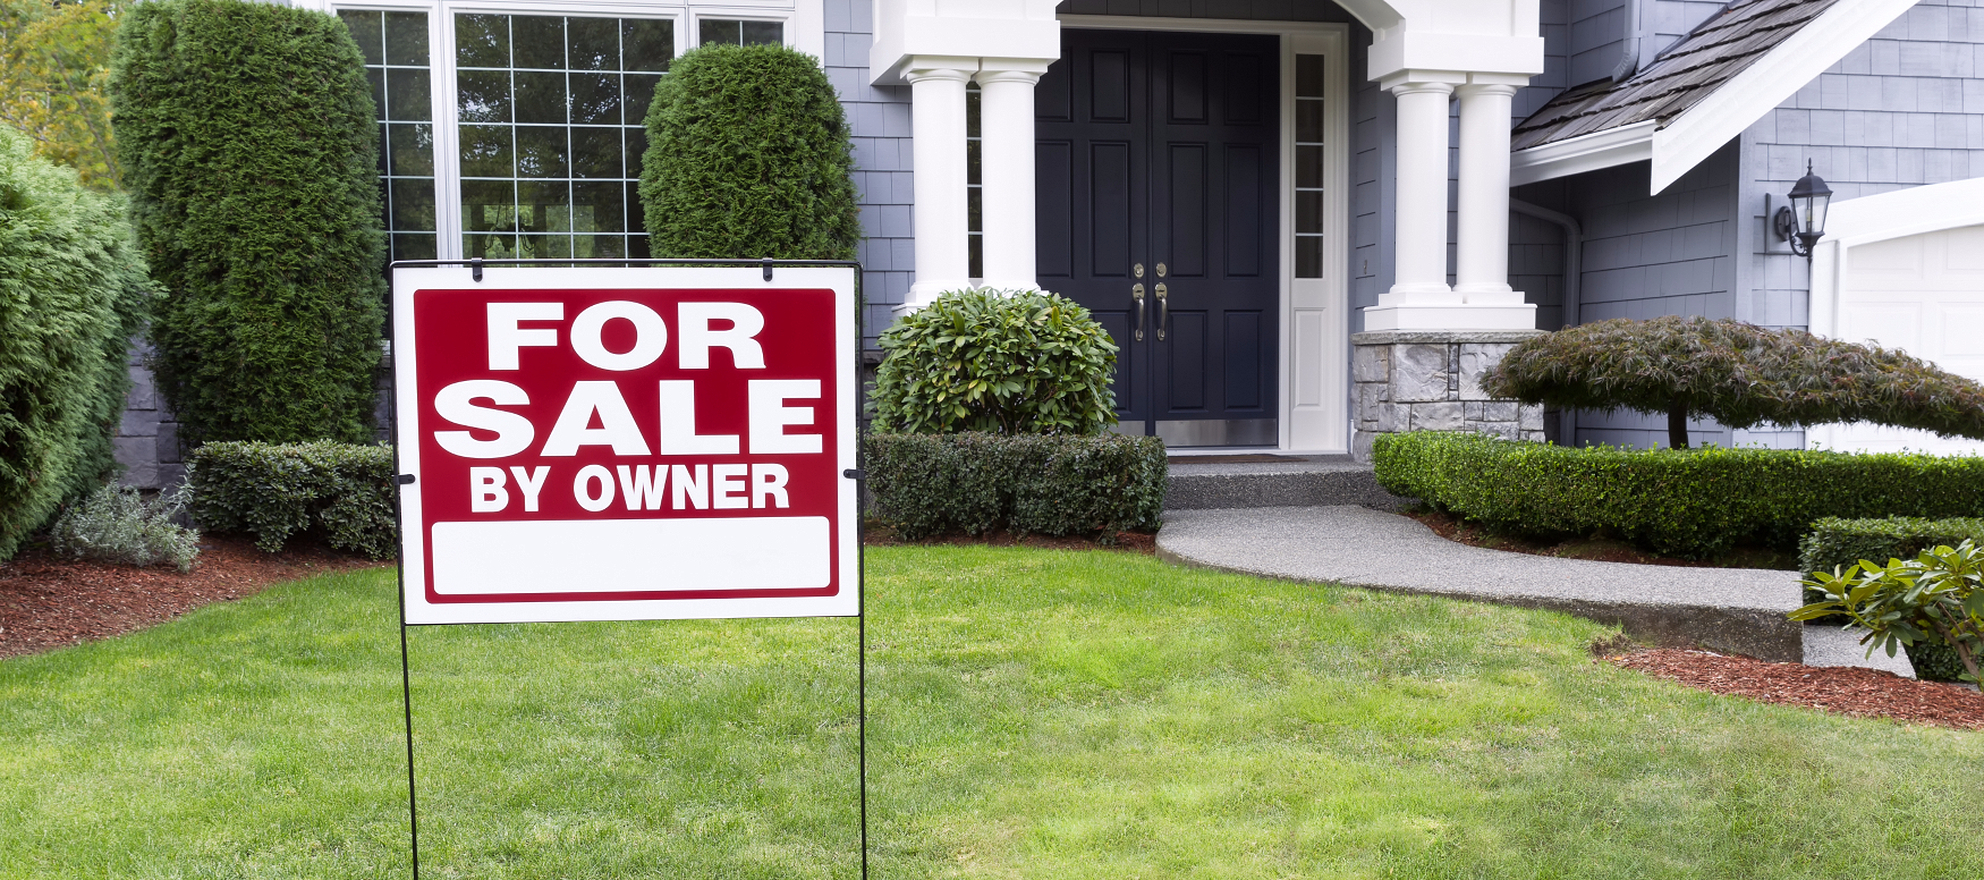 Should real estate agents FSBO their own home?